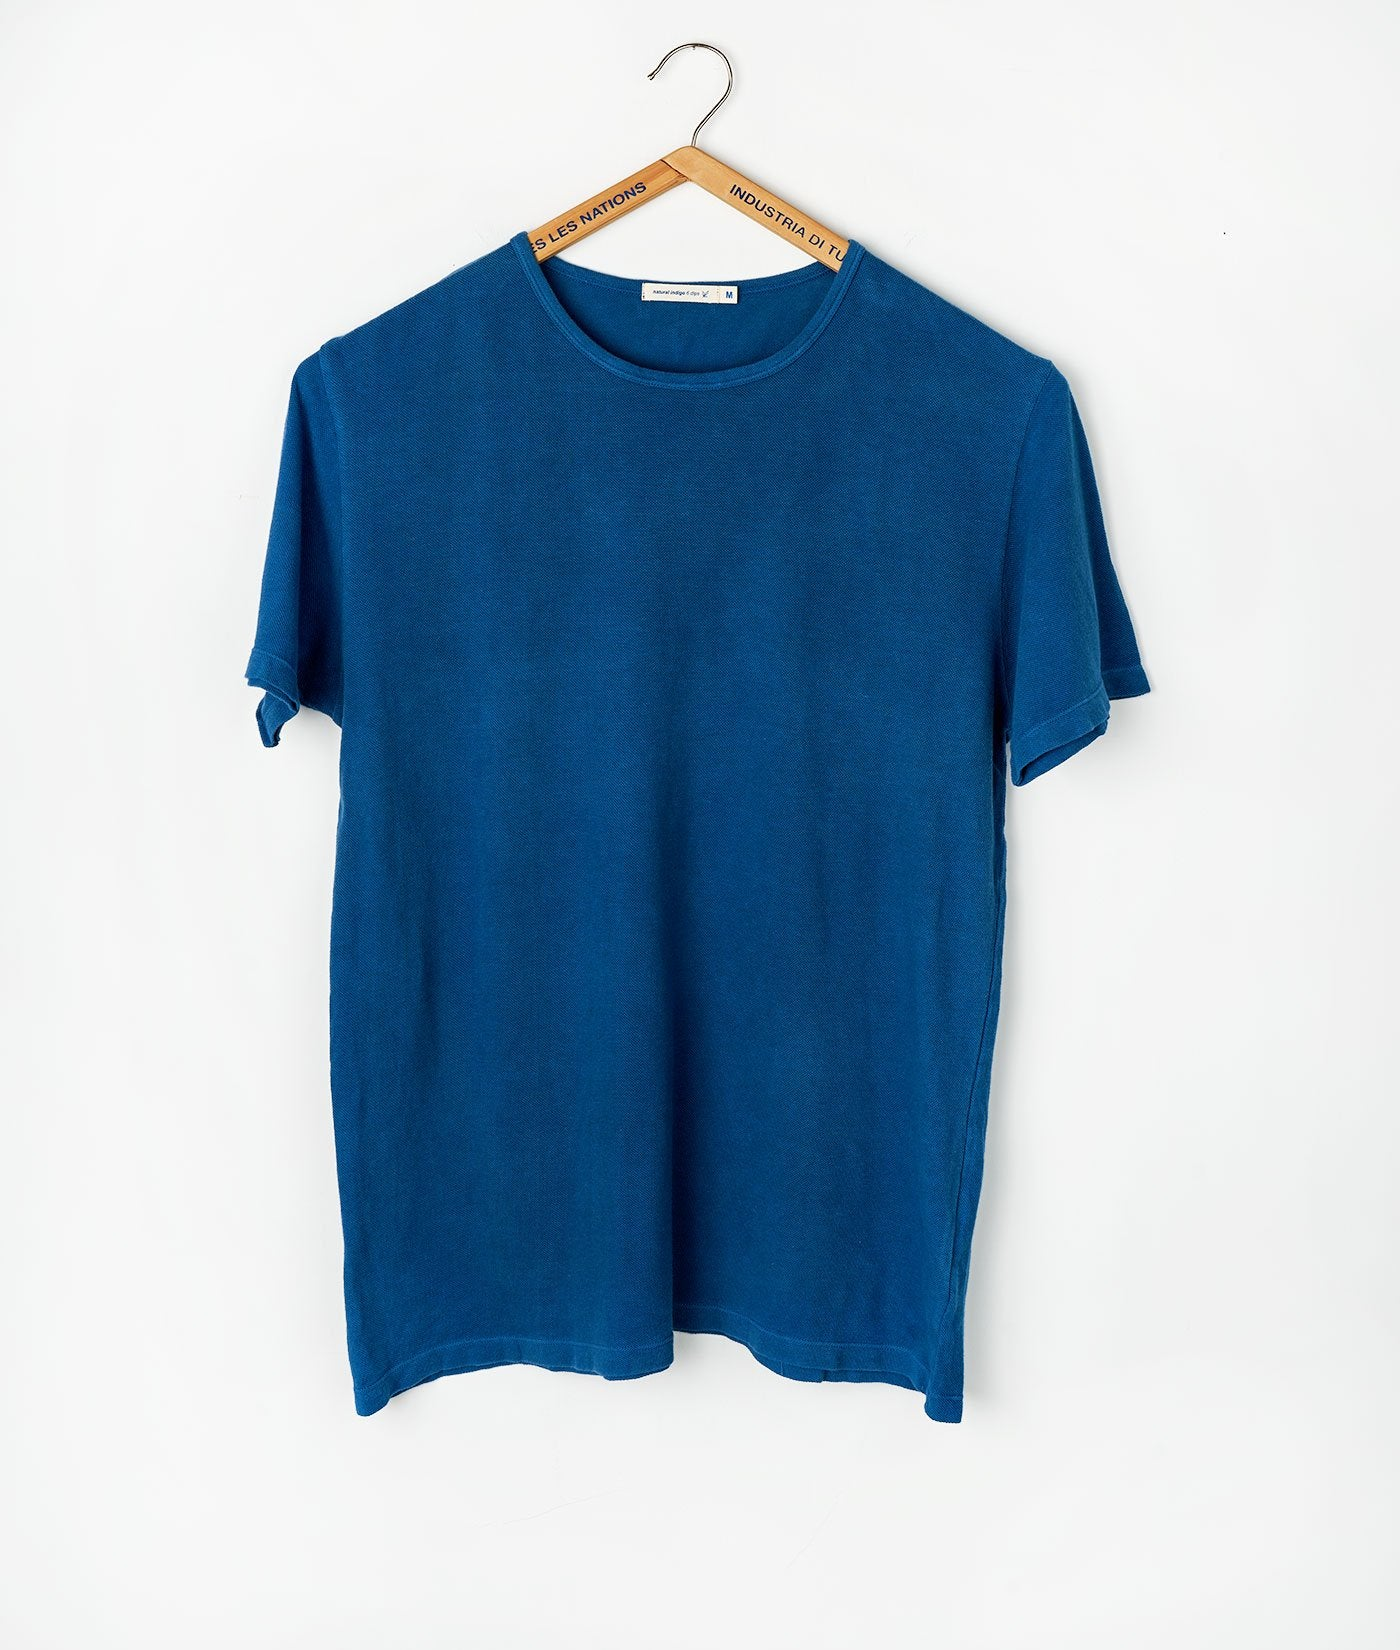 Industry of All Nations Pique Crew Neck T-Shirt Indigo 6